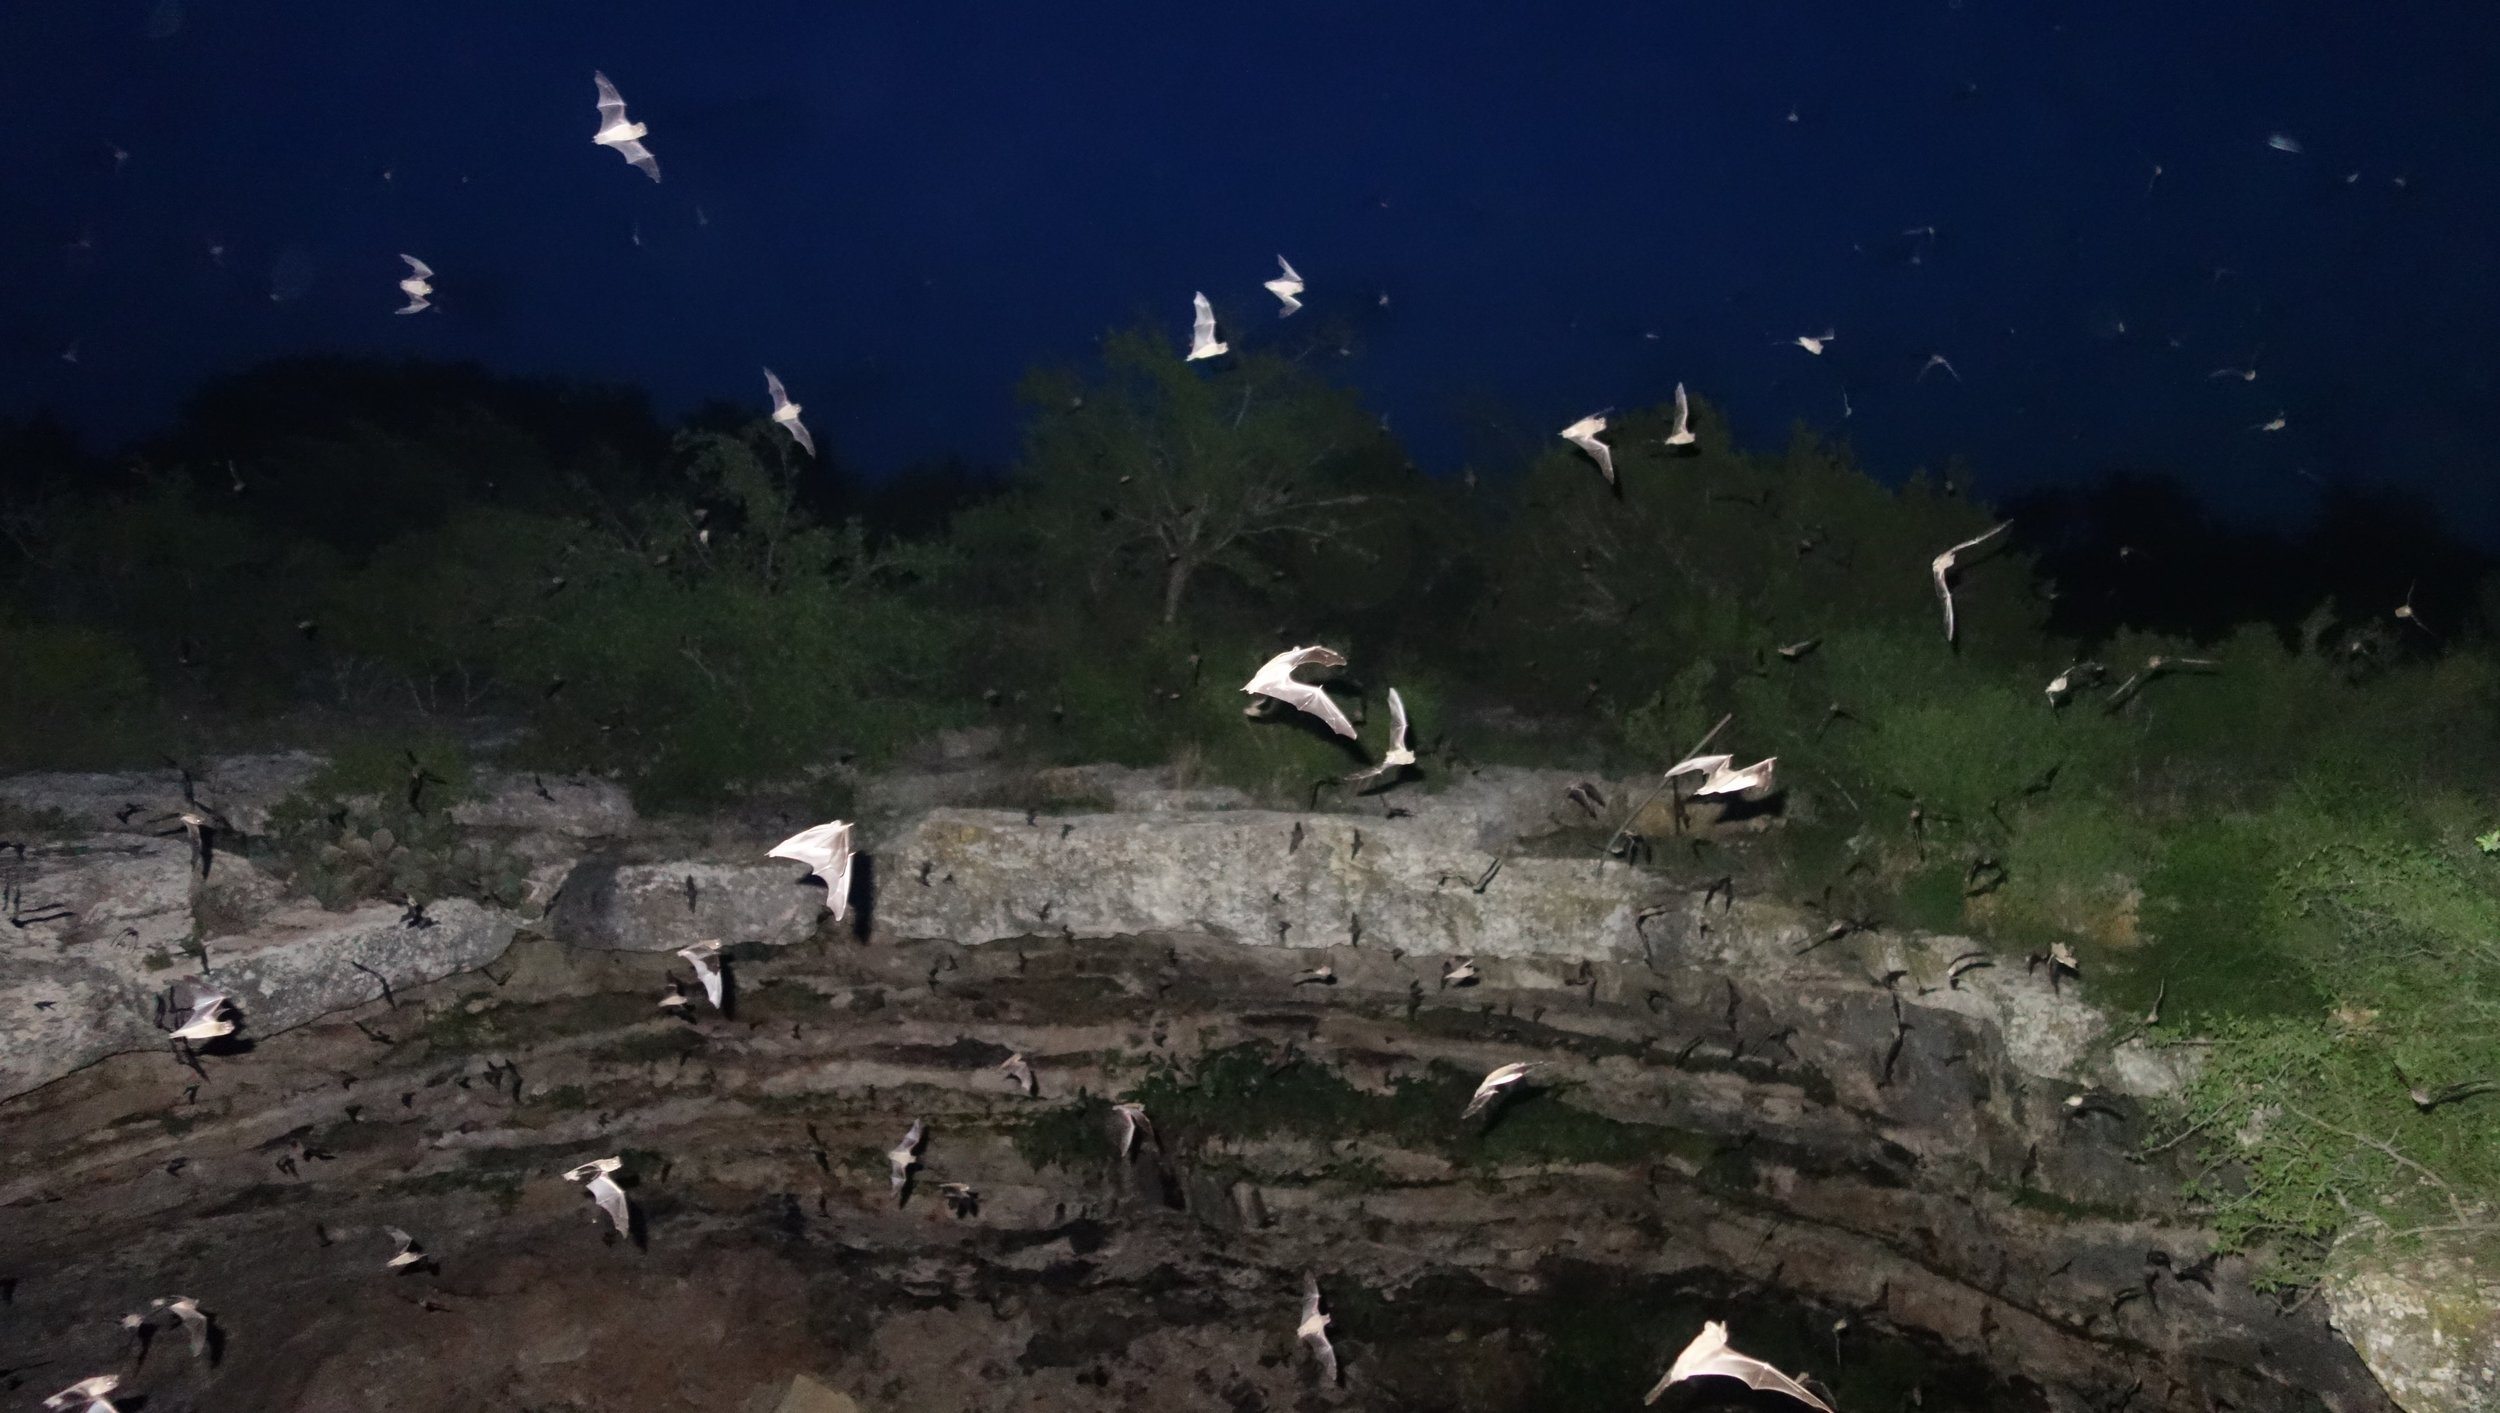 Mexican free tailed bats emerge from the Devil's Sinkhole in TX. I was very happy that I decided to wait for dark and see all the bats!